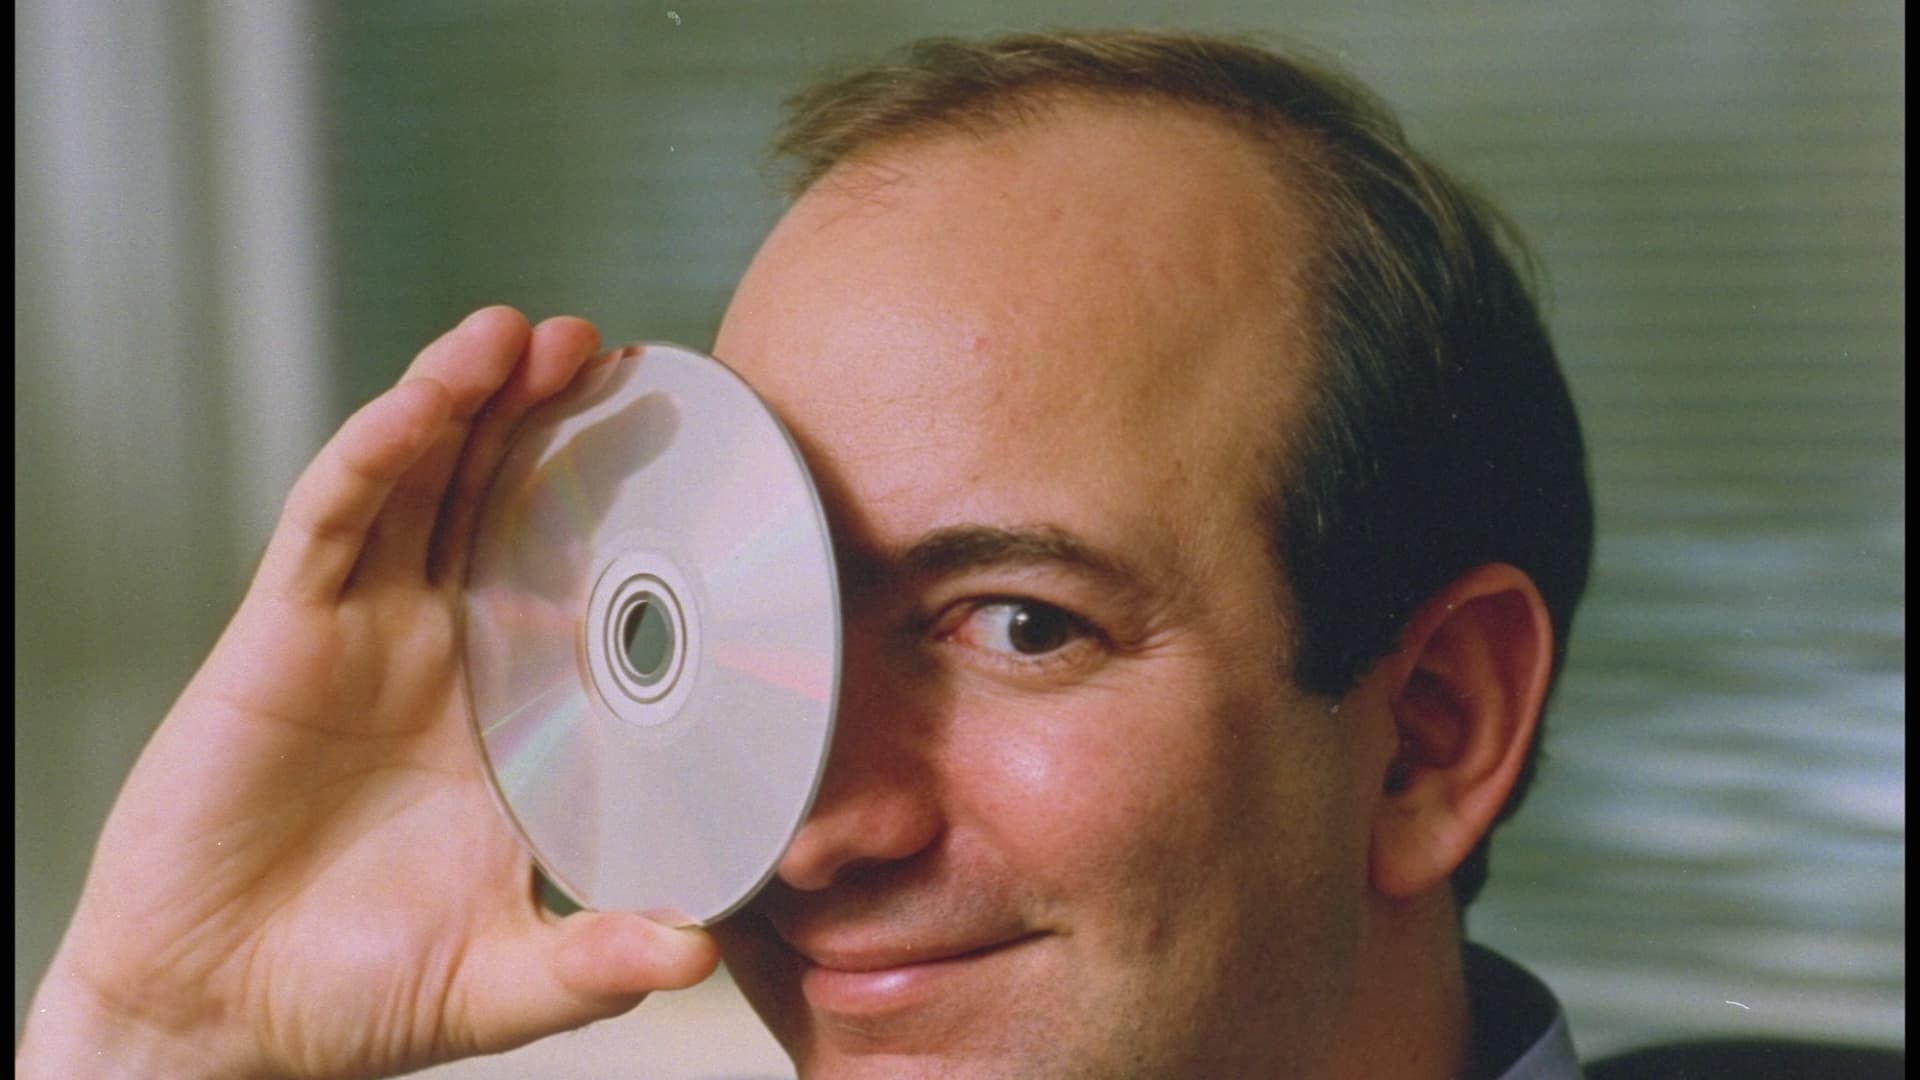 Jeff Bezos, CEO and founder of Amazon.com in 1999